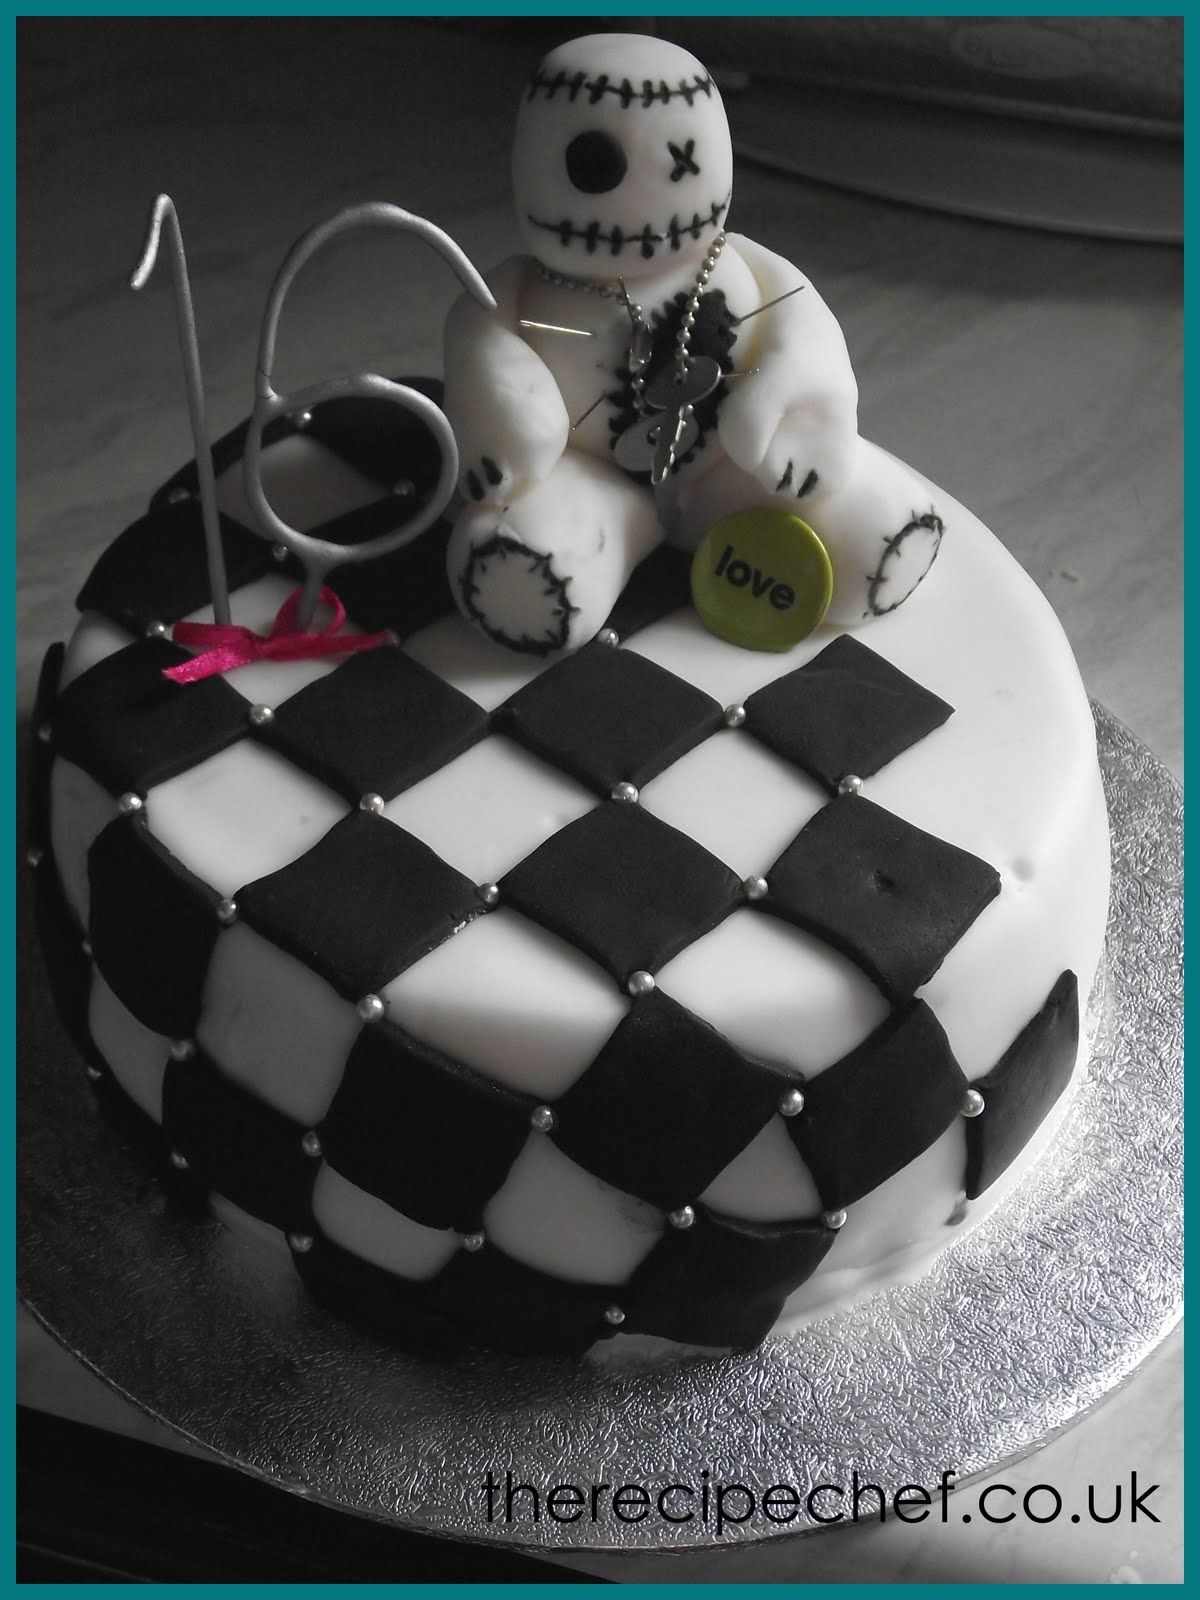 Miraculous Emo Birthday Cake Ideas Google Search With Images Chef Cake Birthday Cards Printable Nowaargucafe Filternl